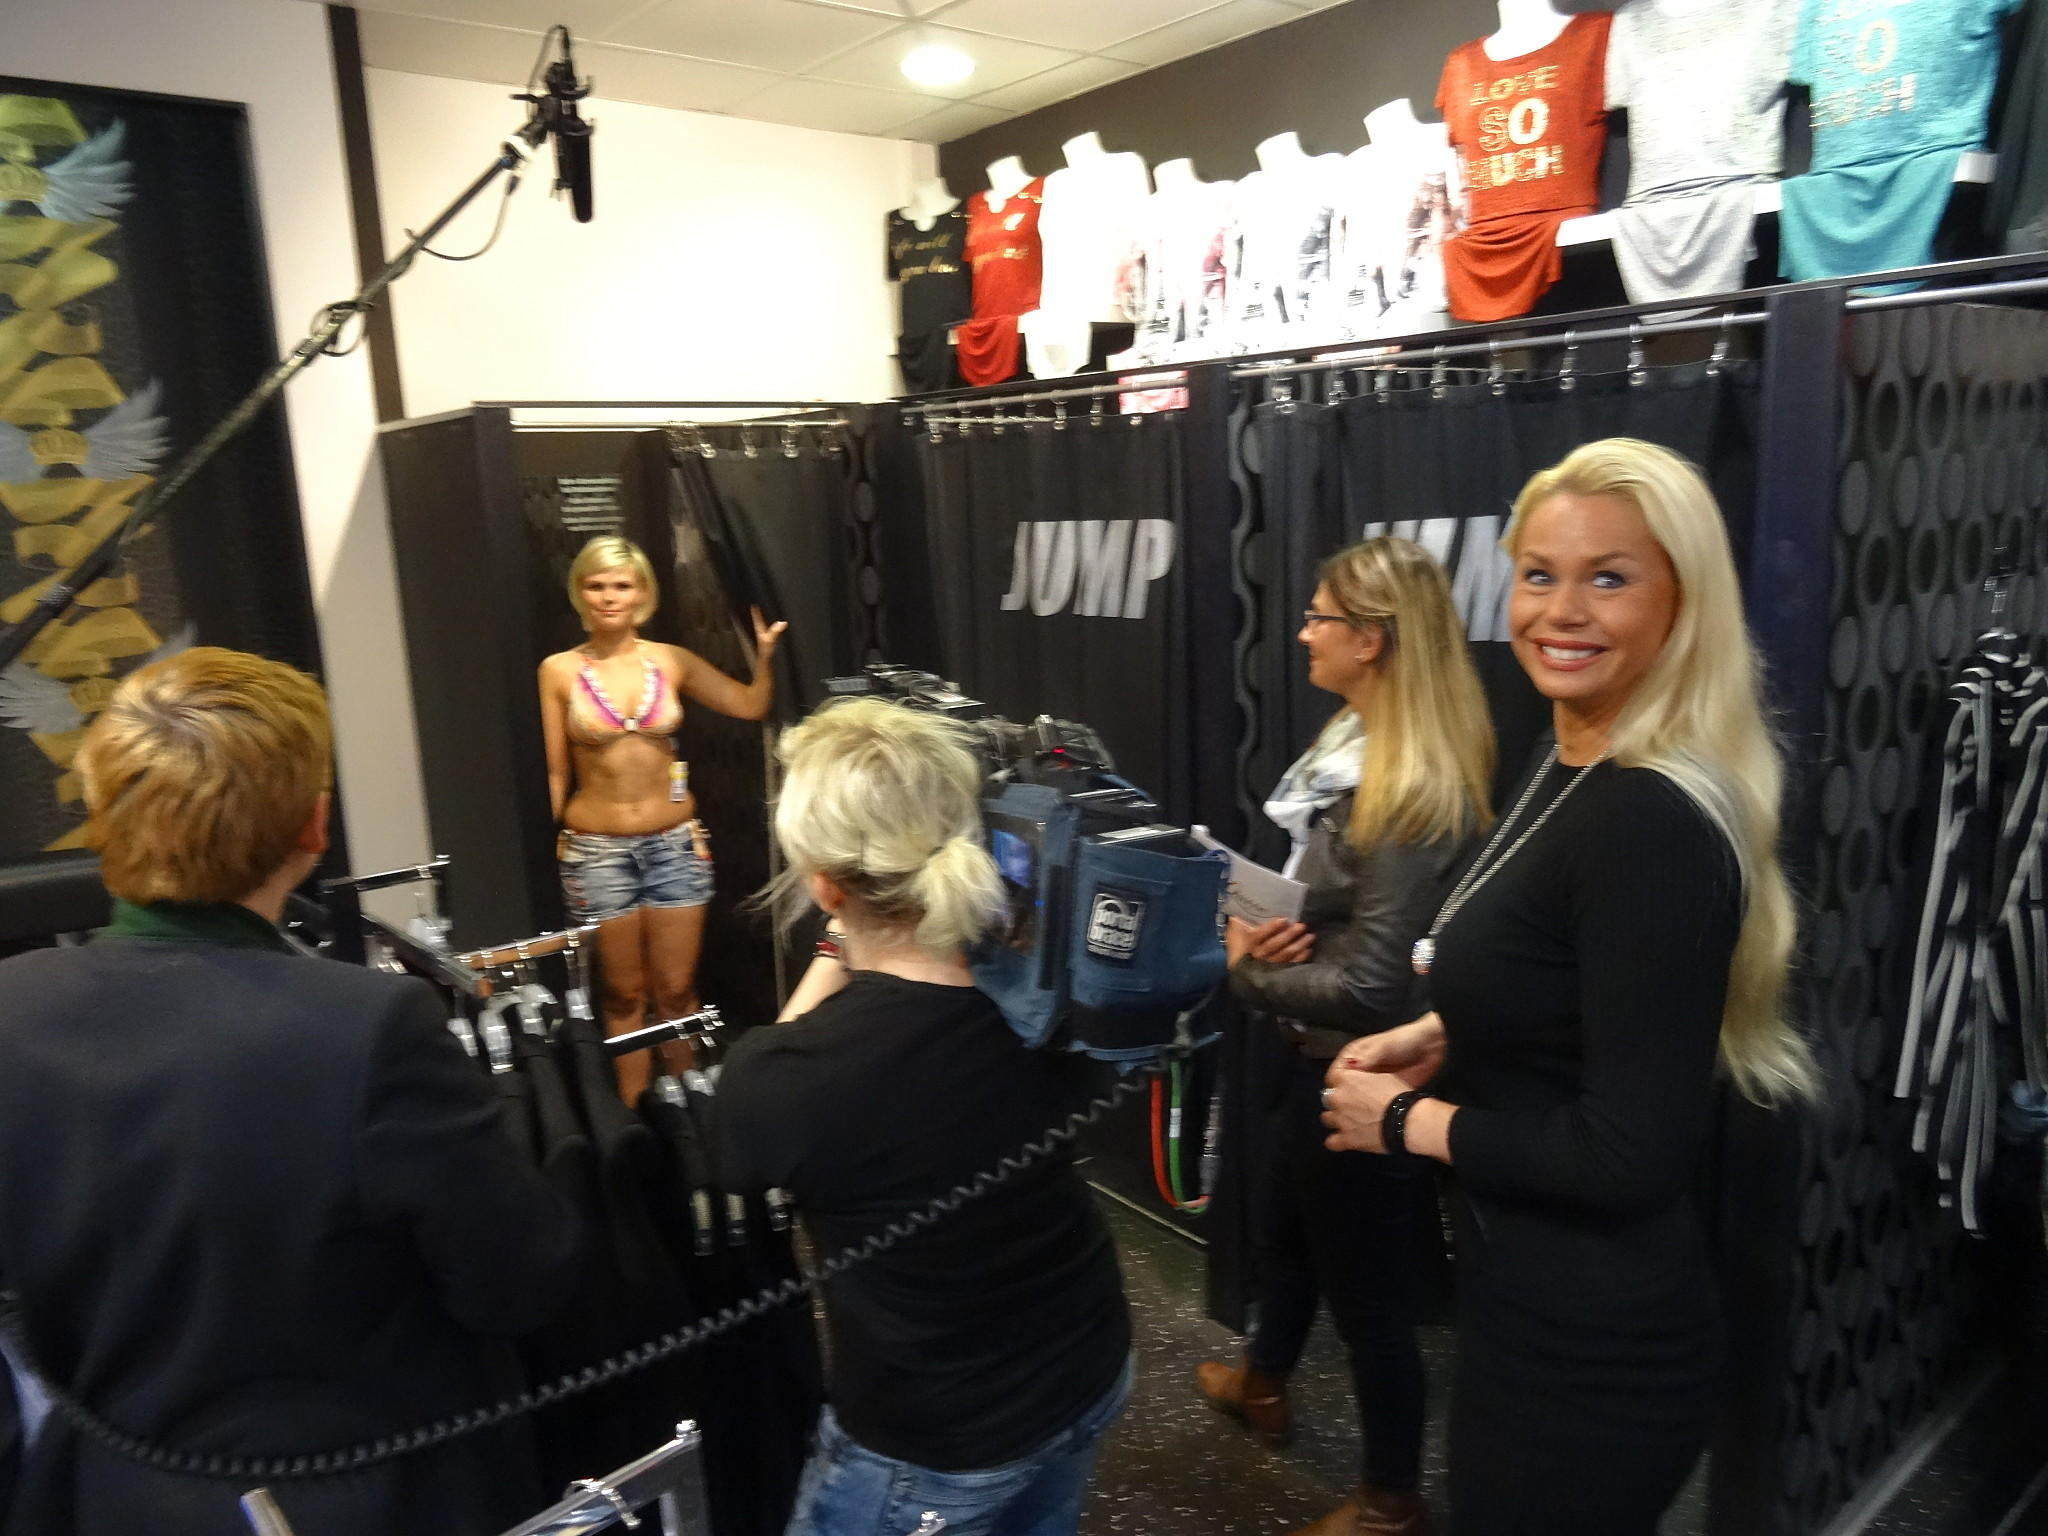 Shopping Queen: Backstage in Rostock